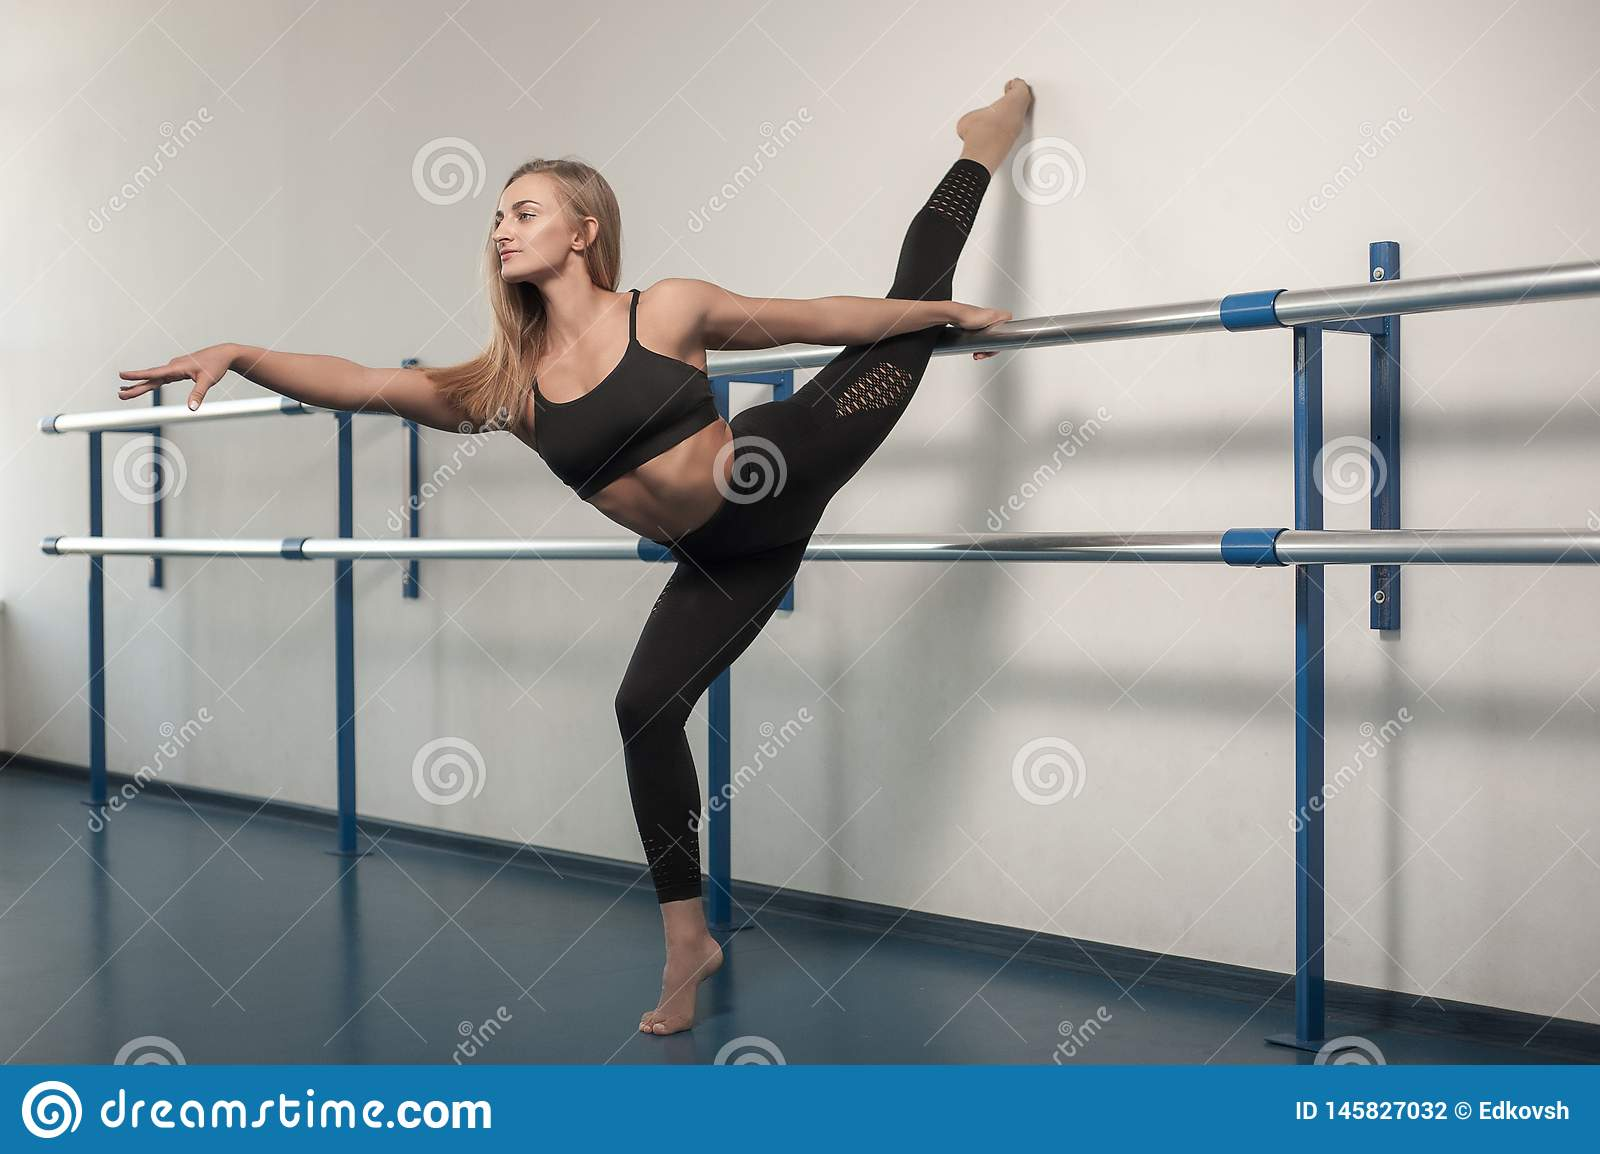 Fit girls preparing legs workout. Leg stretching exercise fitness woman doing warm-up, hamstring muscles stretch